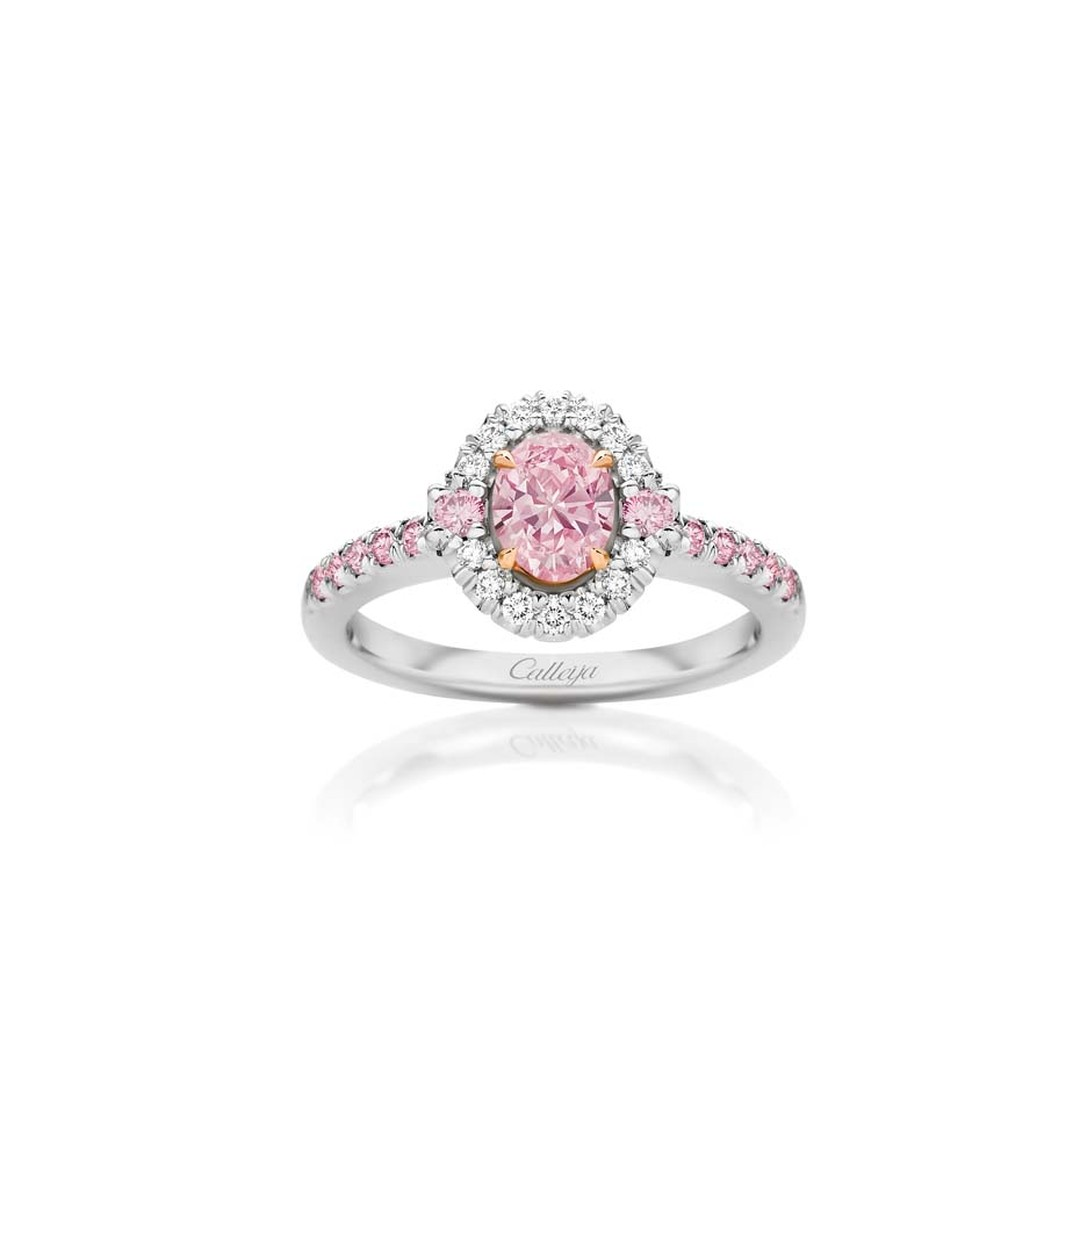 Callieja Elyssa Agyle brilliant-cut pink diamond ring surrounded by white and pink pavé diamonds.